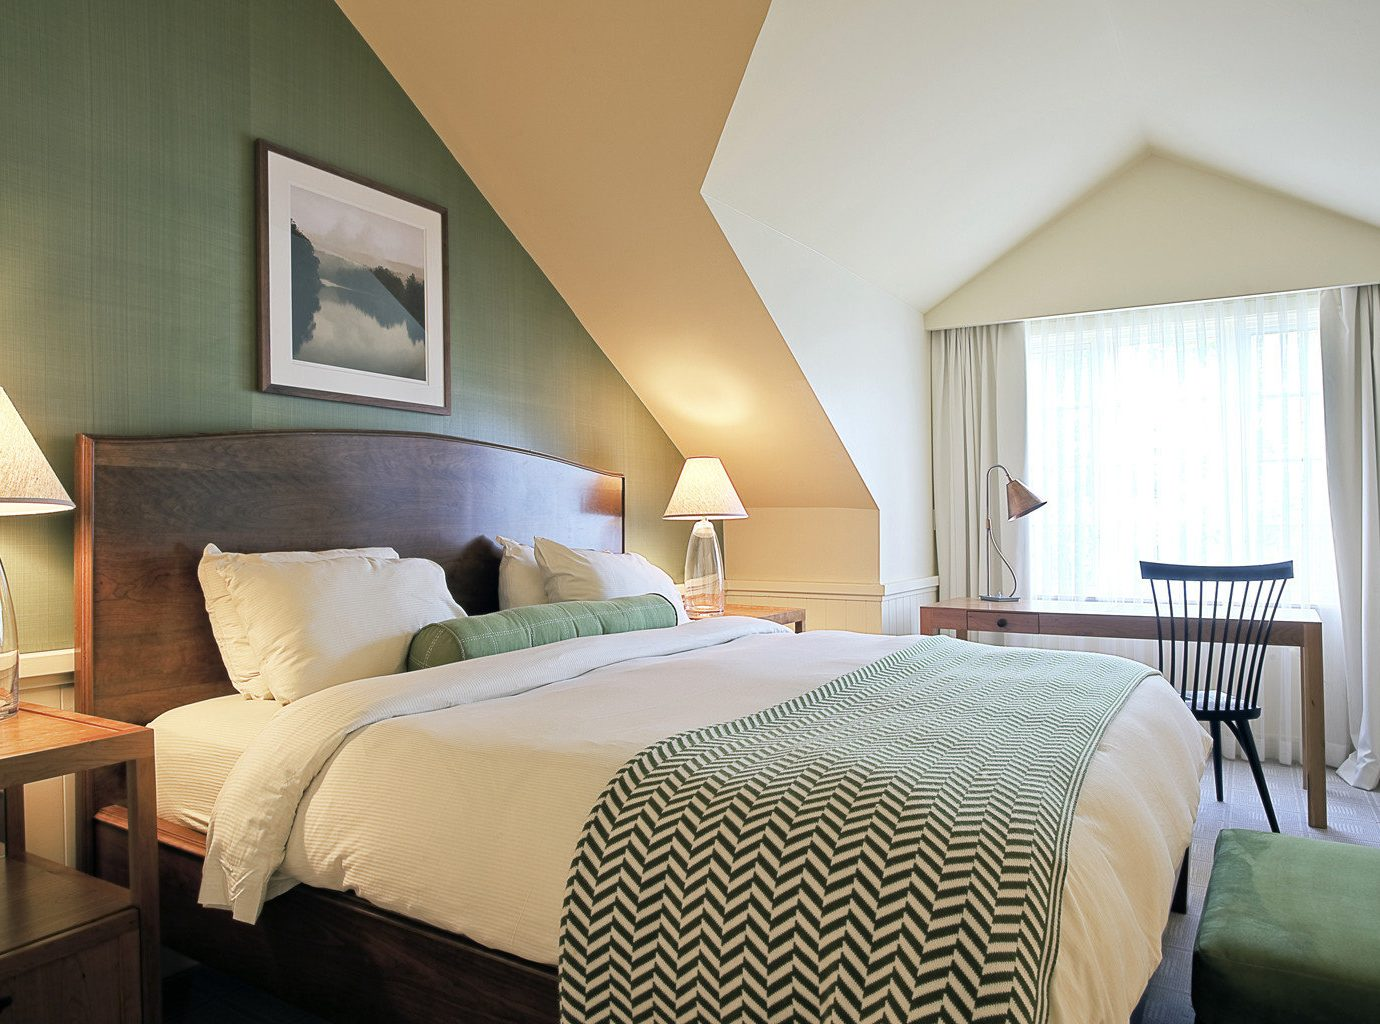 Bedroom Country Food + Drink Inn Living Outdoors + Adventure Resort Trip Ideas Weekend Getaways bed indoor wall sofa hotel room floor property Suite estate cottage interior design home real estate pillow Villa apartment decorated furniture lamp